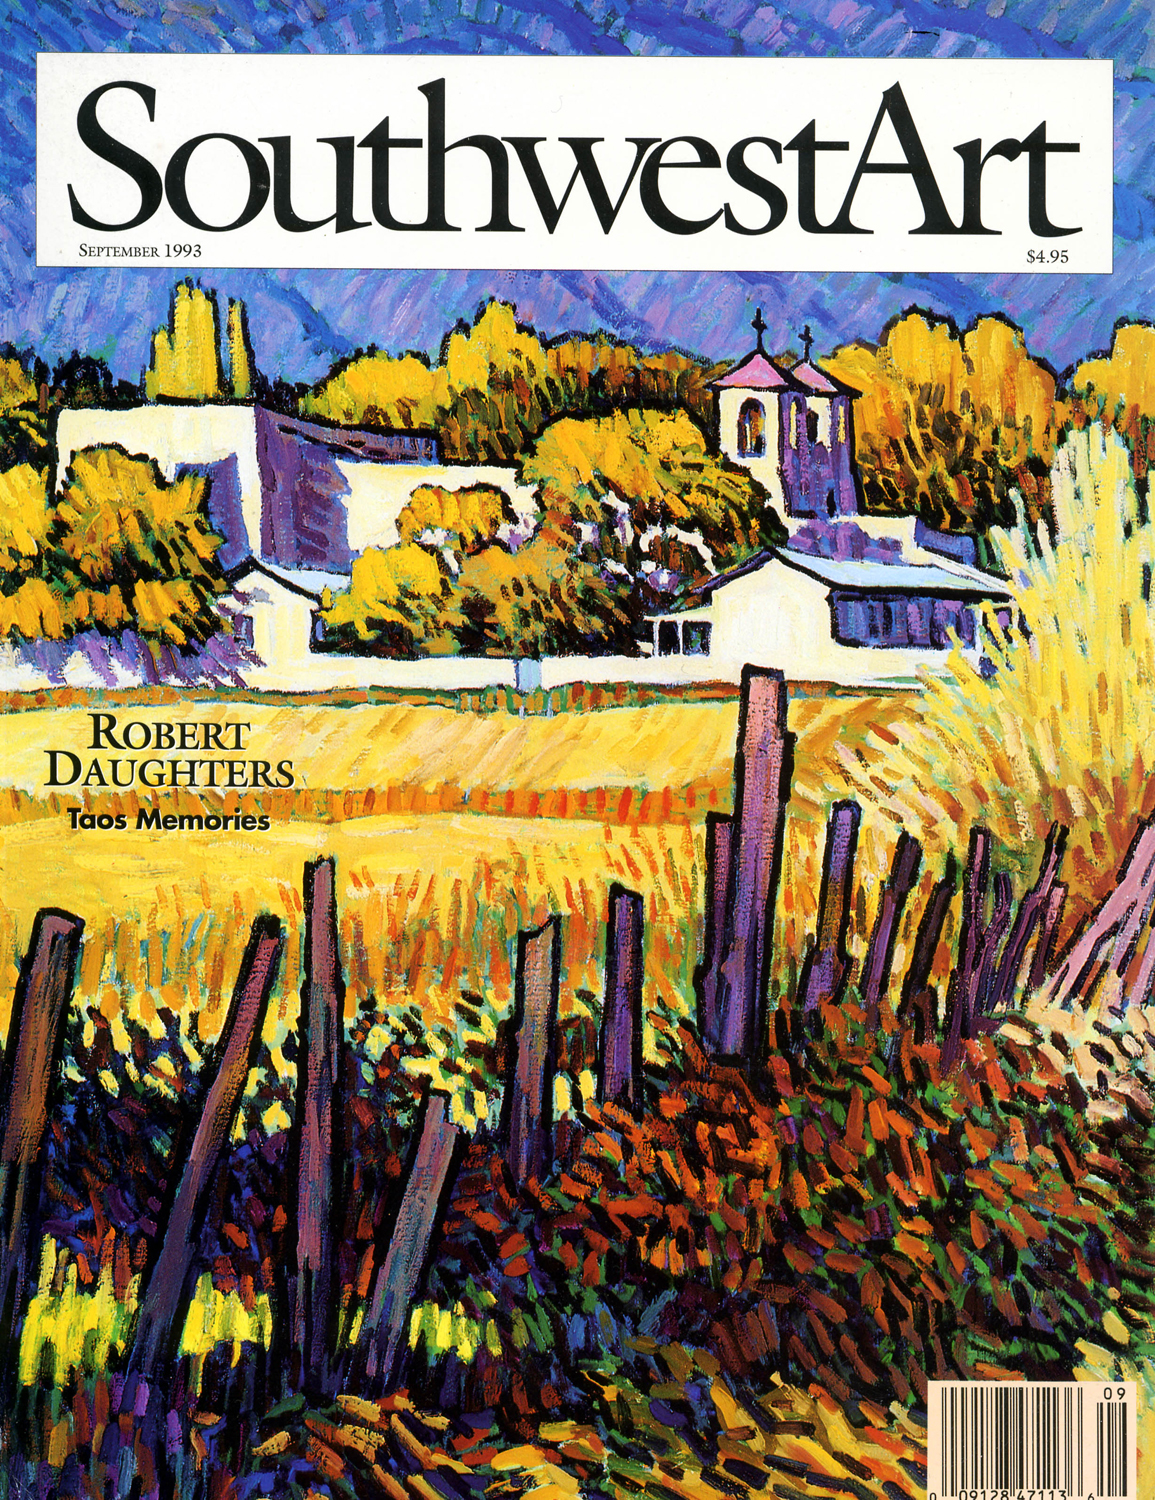 Southwest Art Cover.jpg